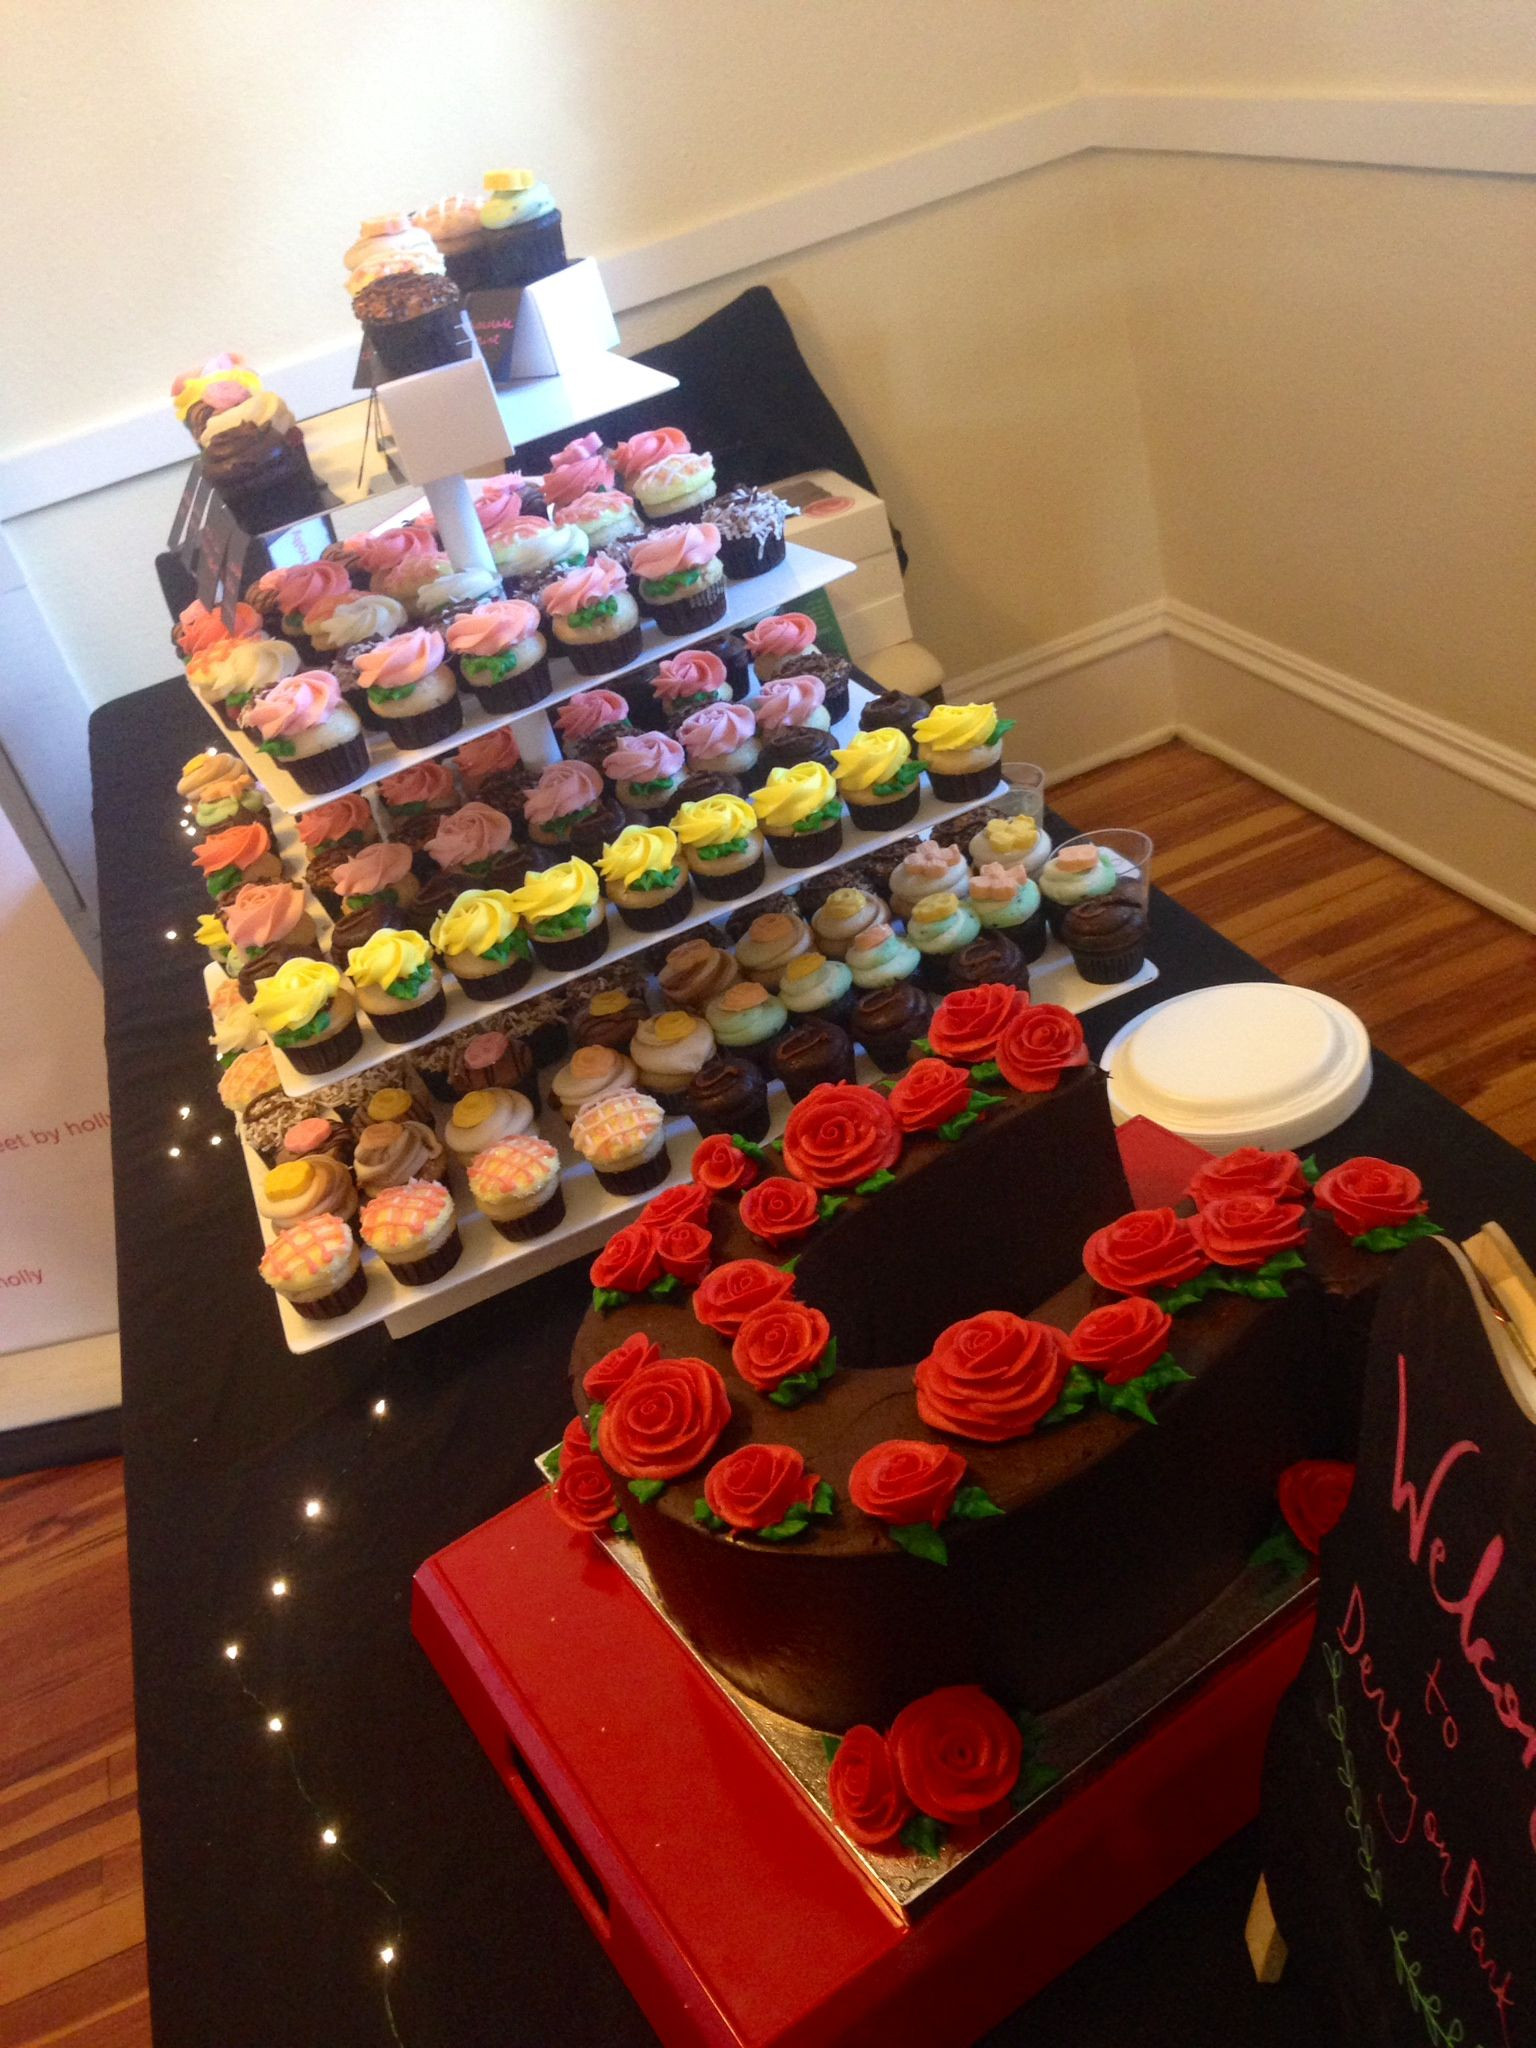 Cupcakes Winter Park  Winter Park Florida Derby on Park May 2015 Horseshoe